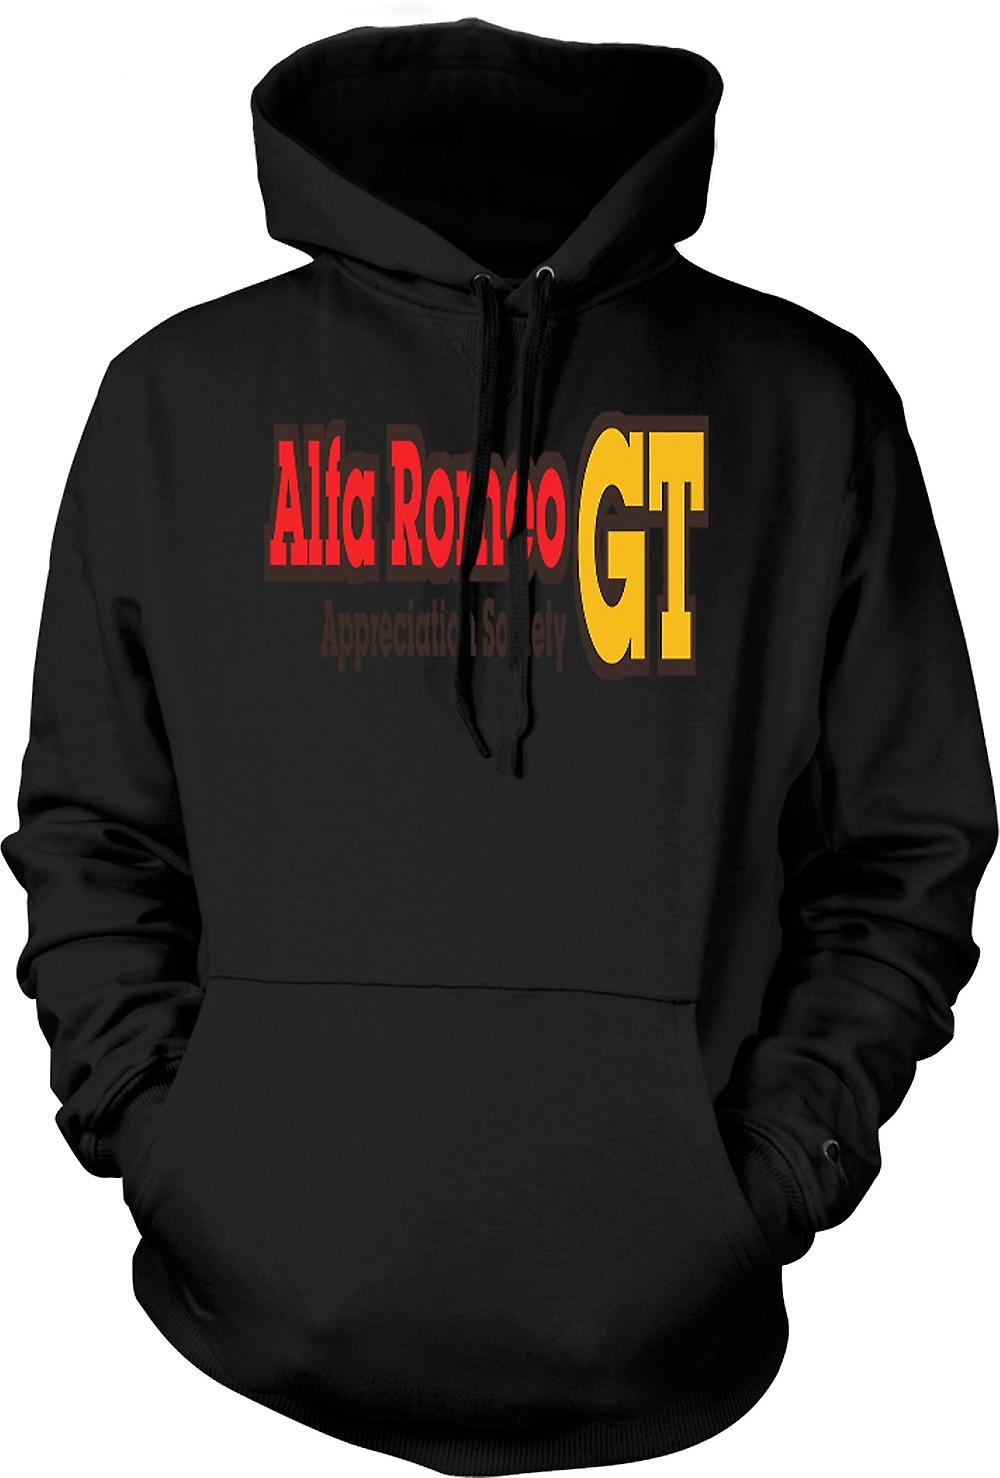 Mens Hoodie - Alfa Romeo GT Appreciation Society